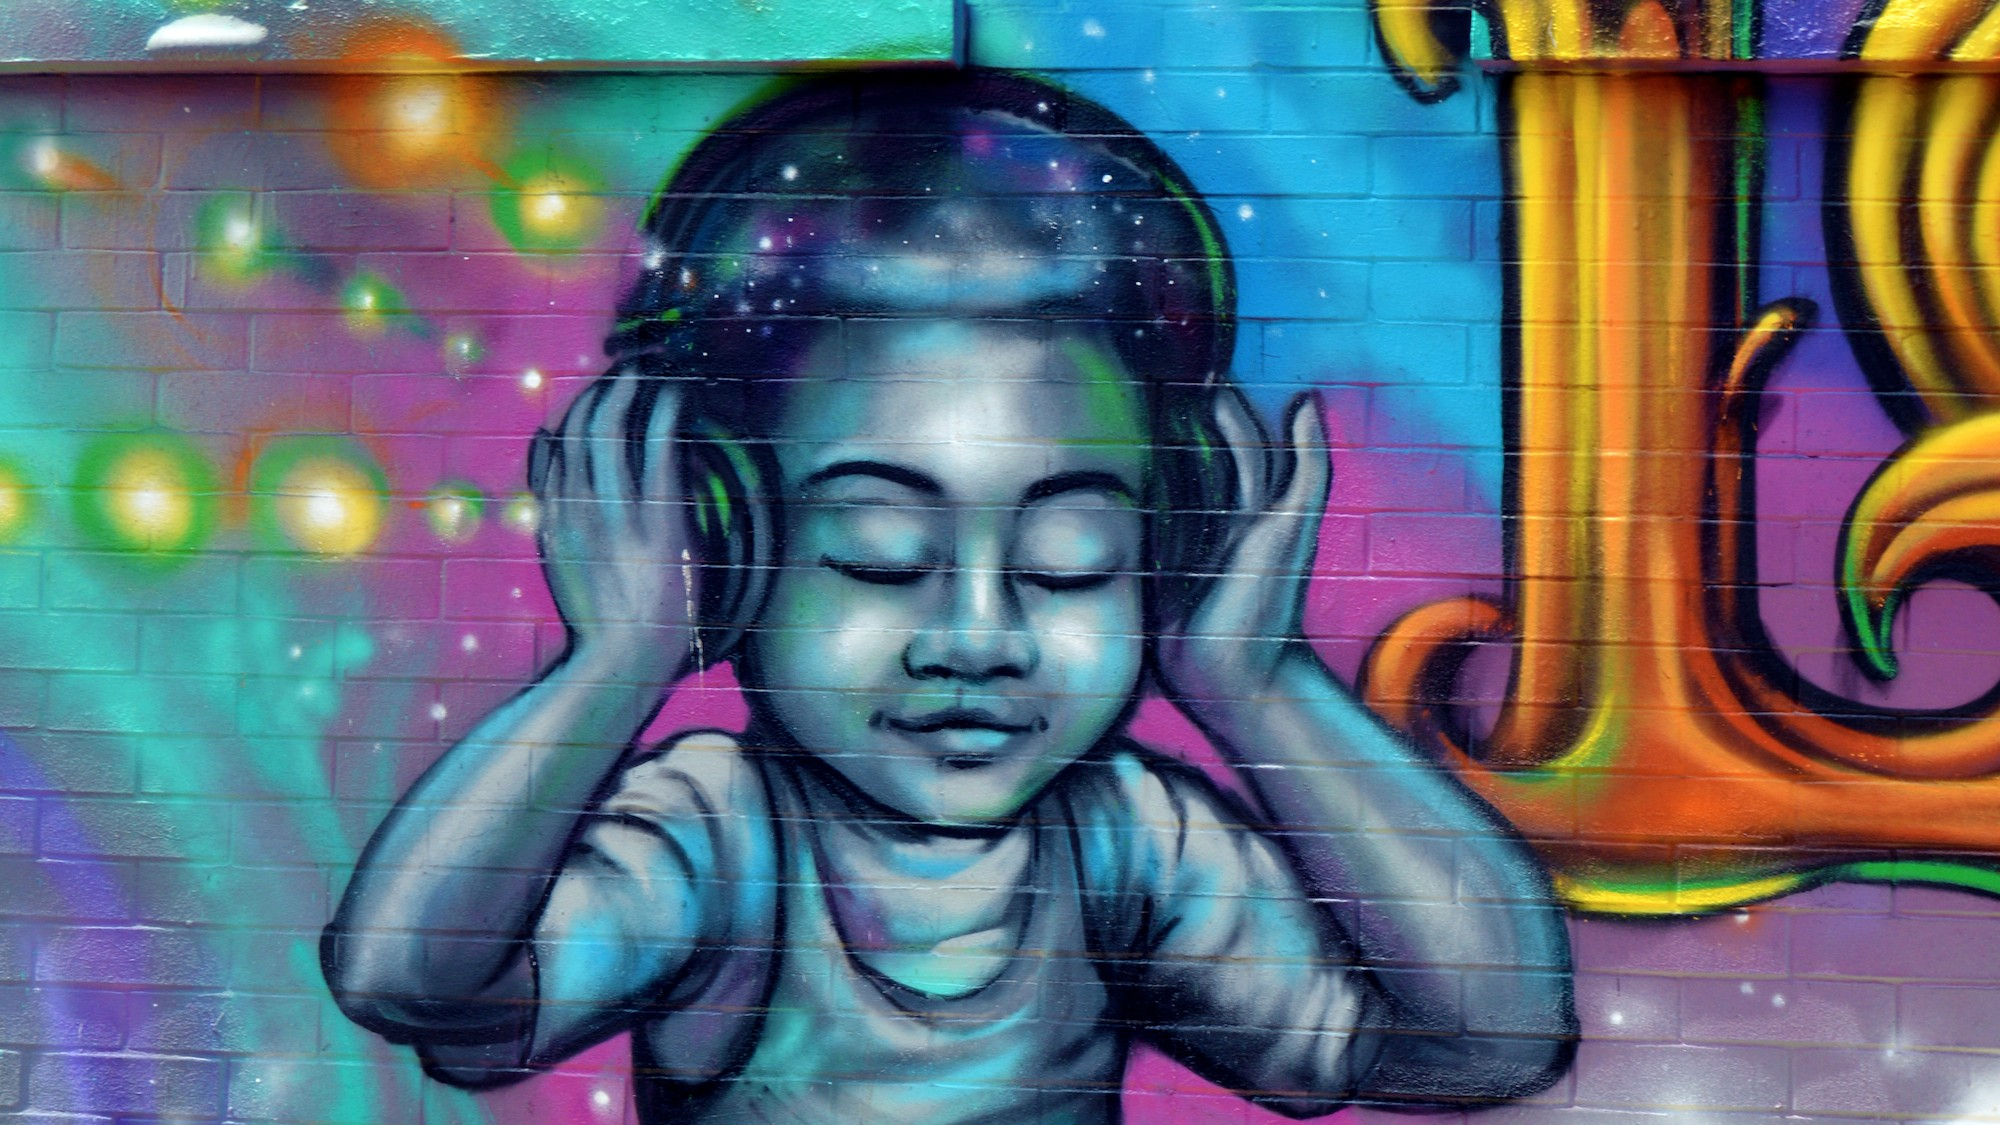 High on Audio: I Tried to Relax With Binaural Beats